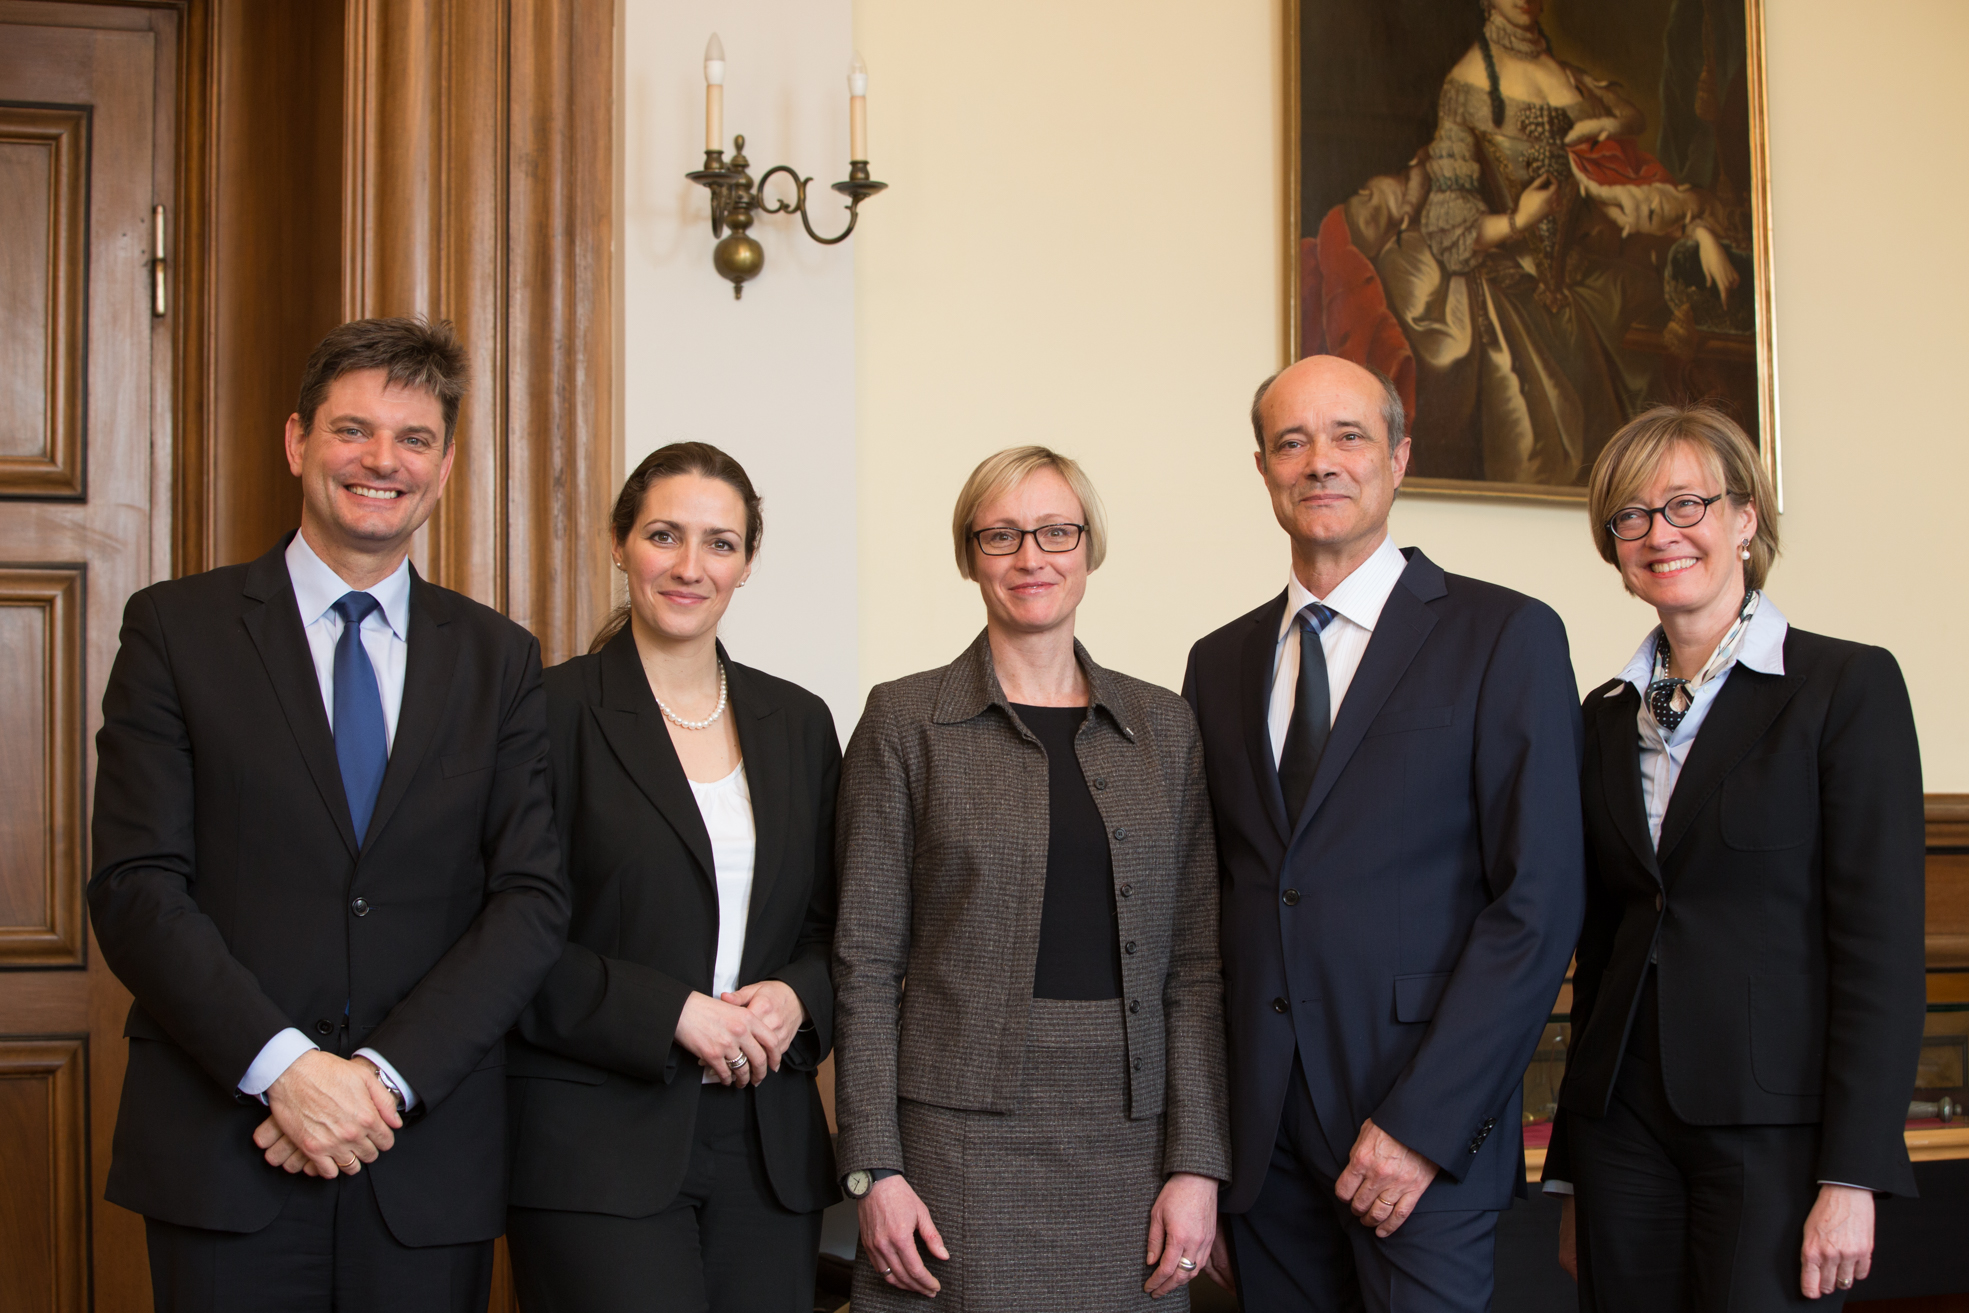 The Humboldt University Council elects three Vice Presidents